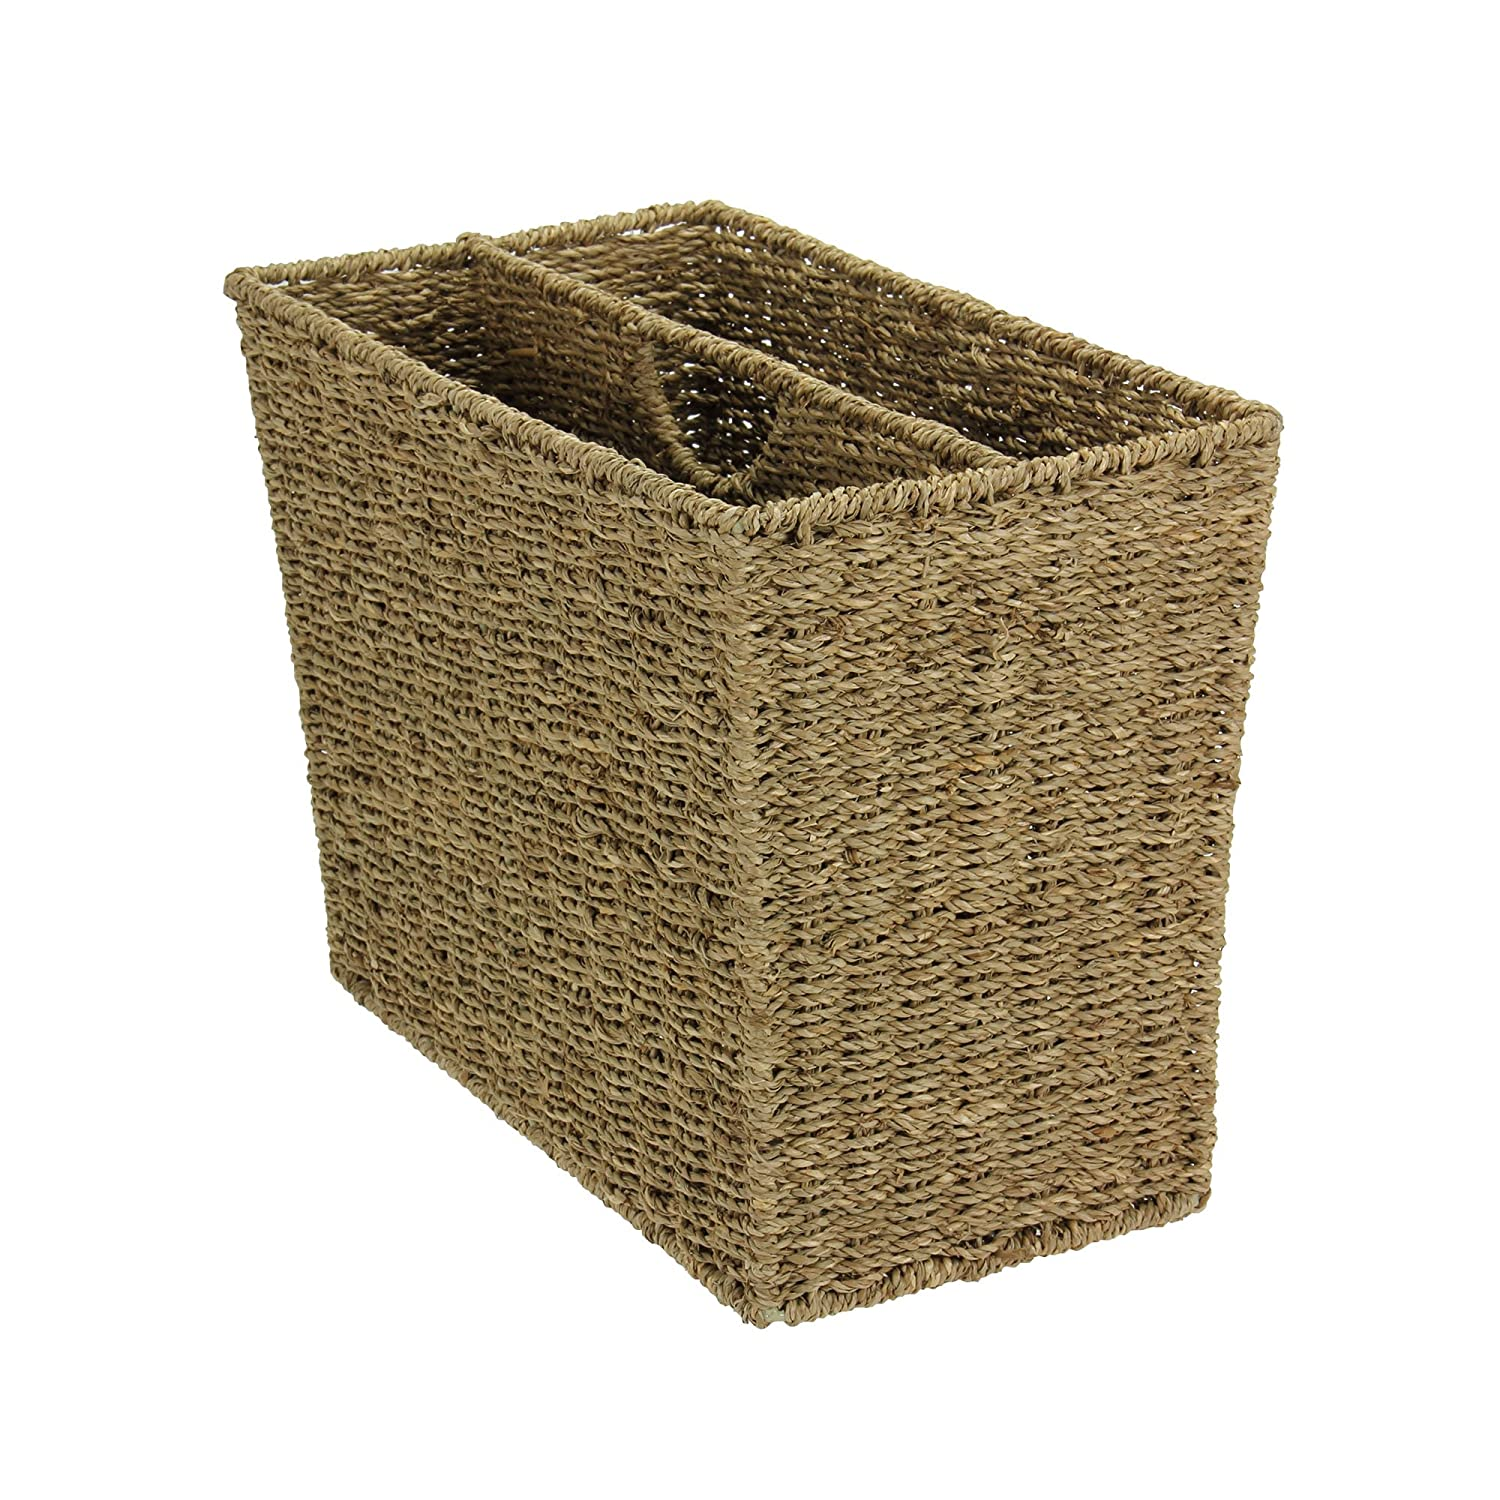 Household Essentials Woven Seagrass Magazine Image 1